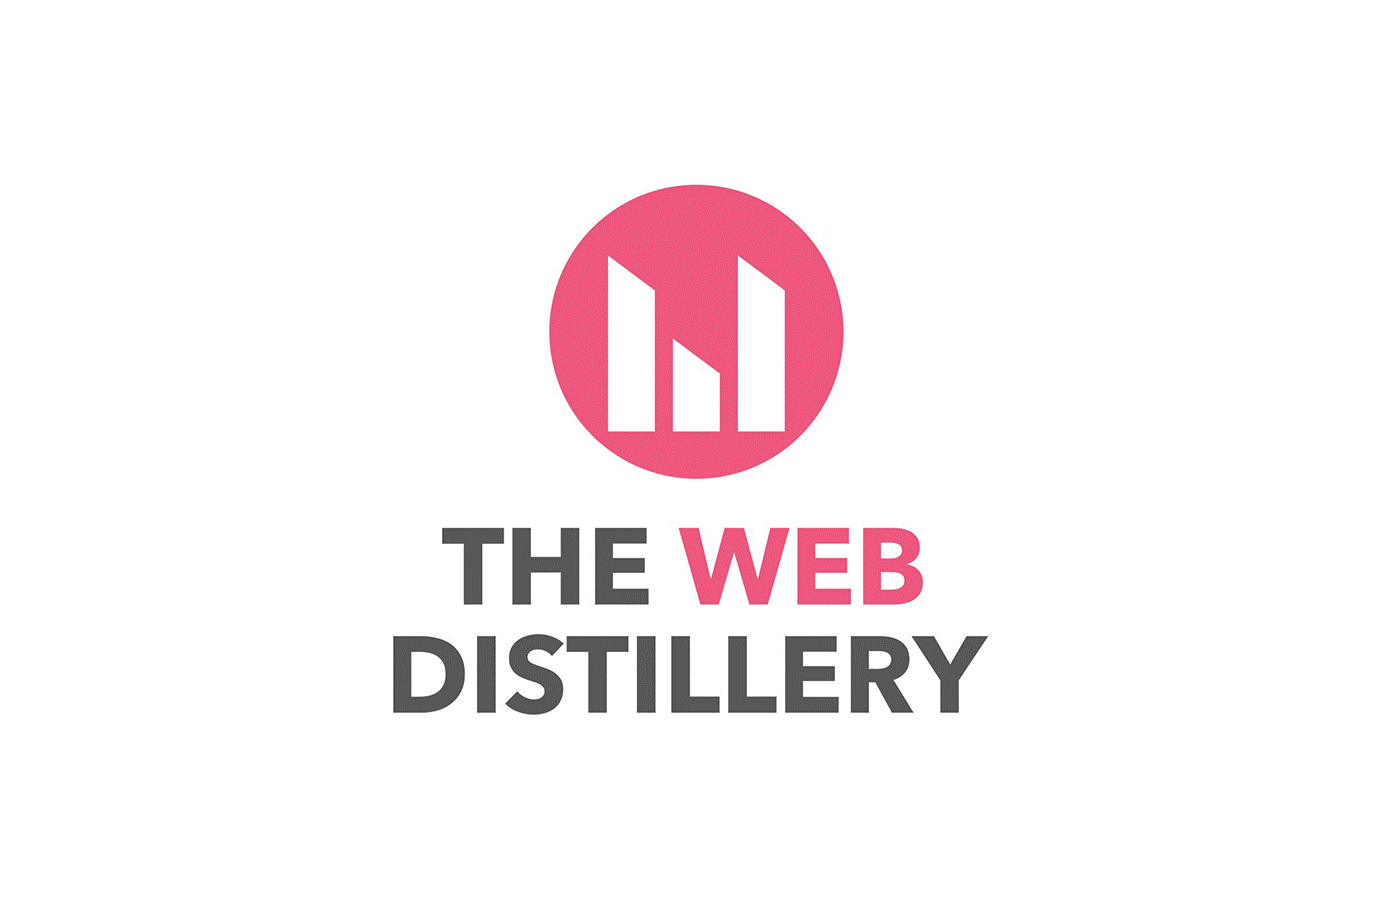 The Web Distillery